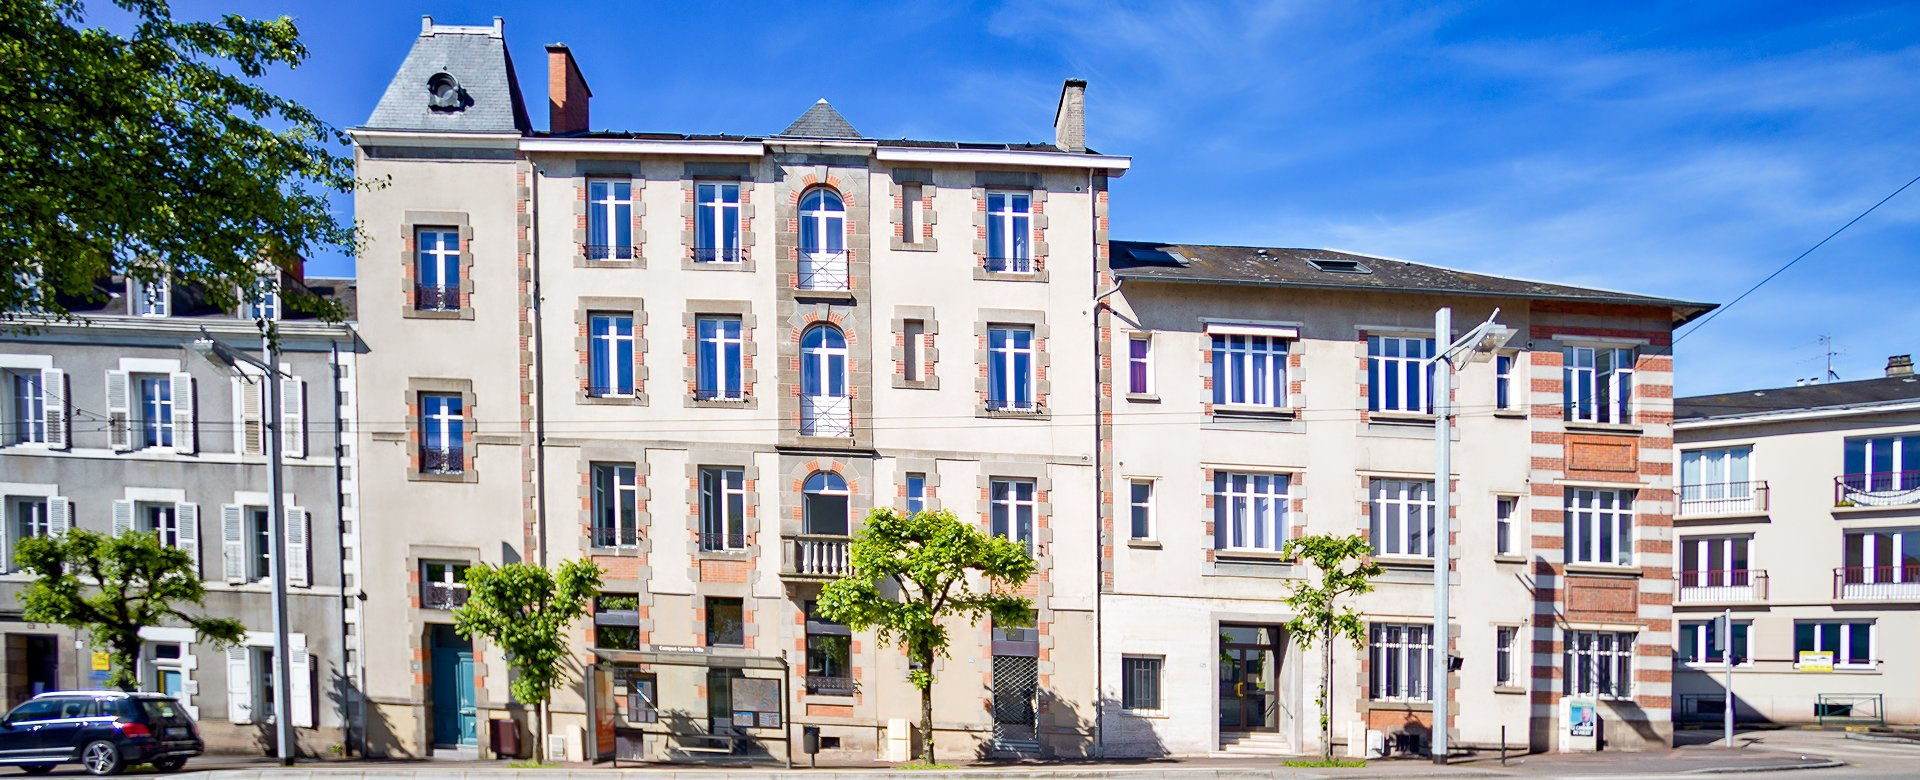 Rental studio apartment in Limoges